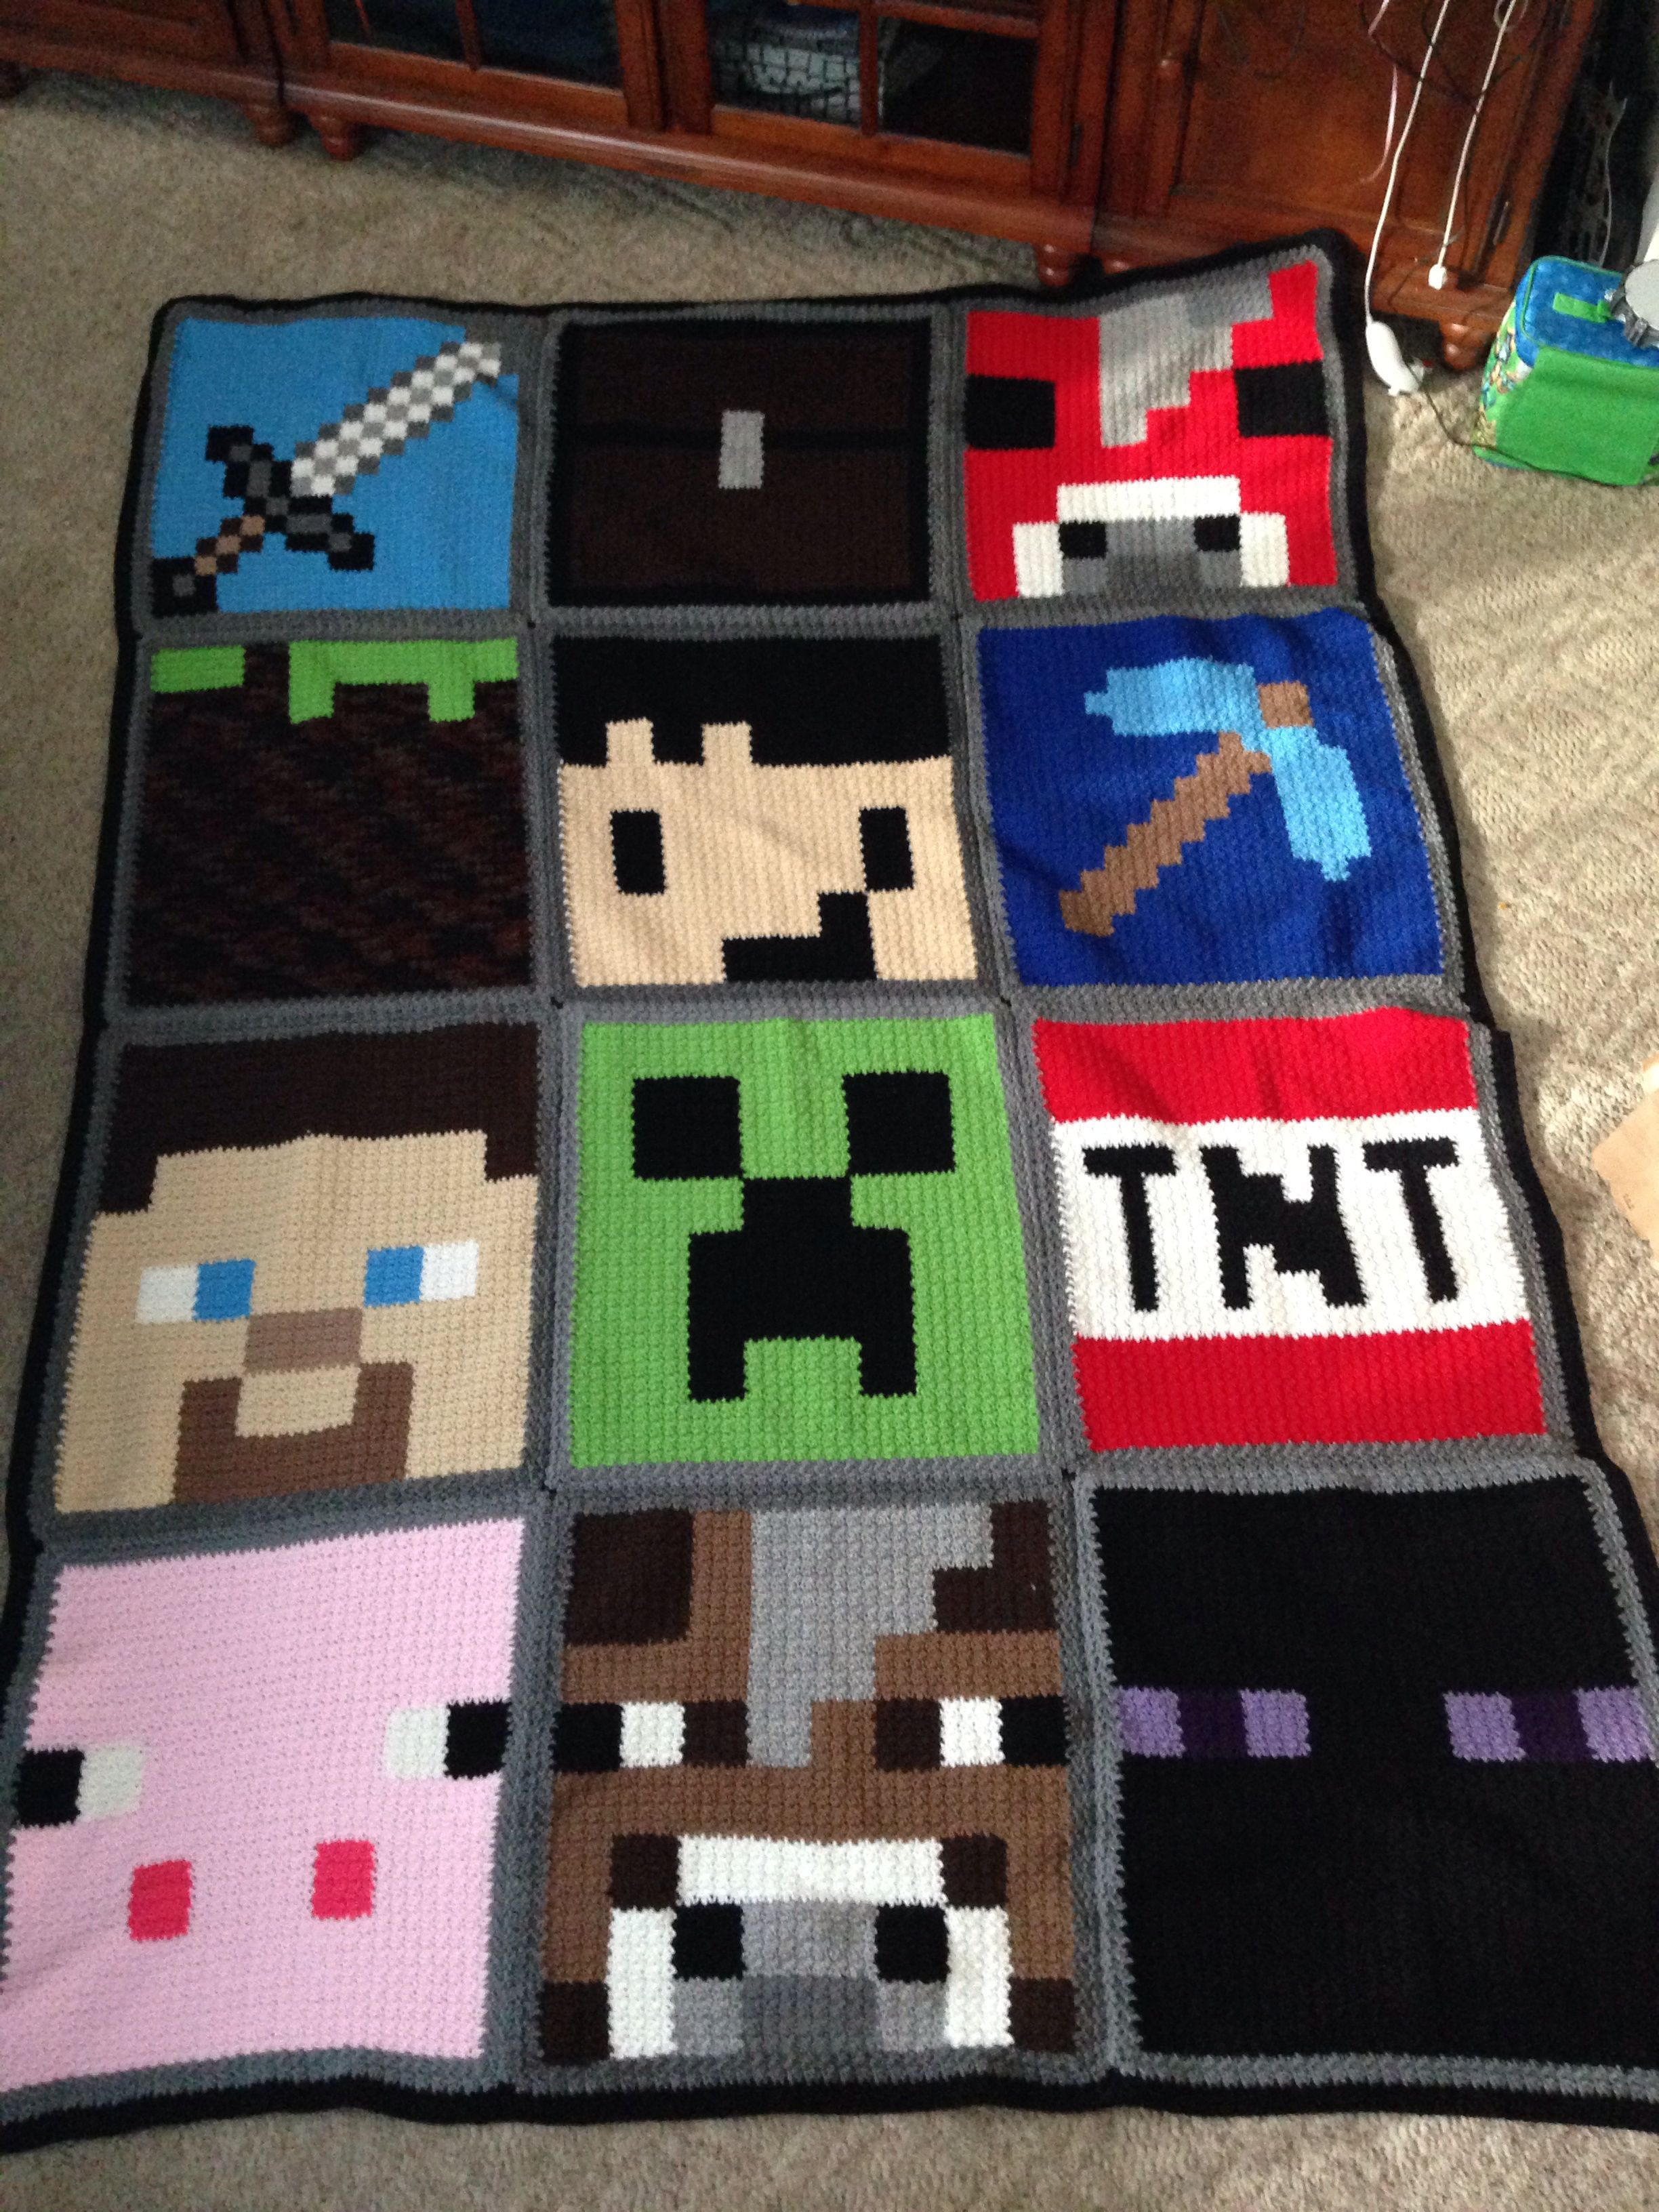 Minecraft blanket #2 | Stuff by Shanz | Pinterest | Cobija, Manta y ...